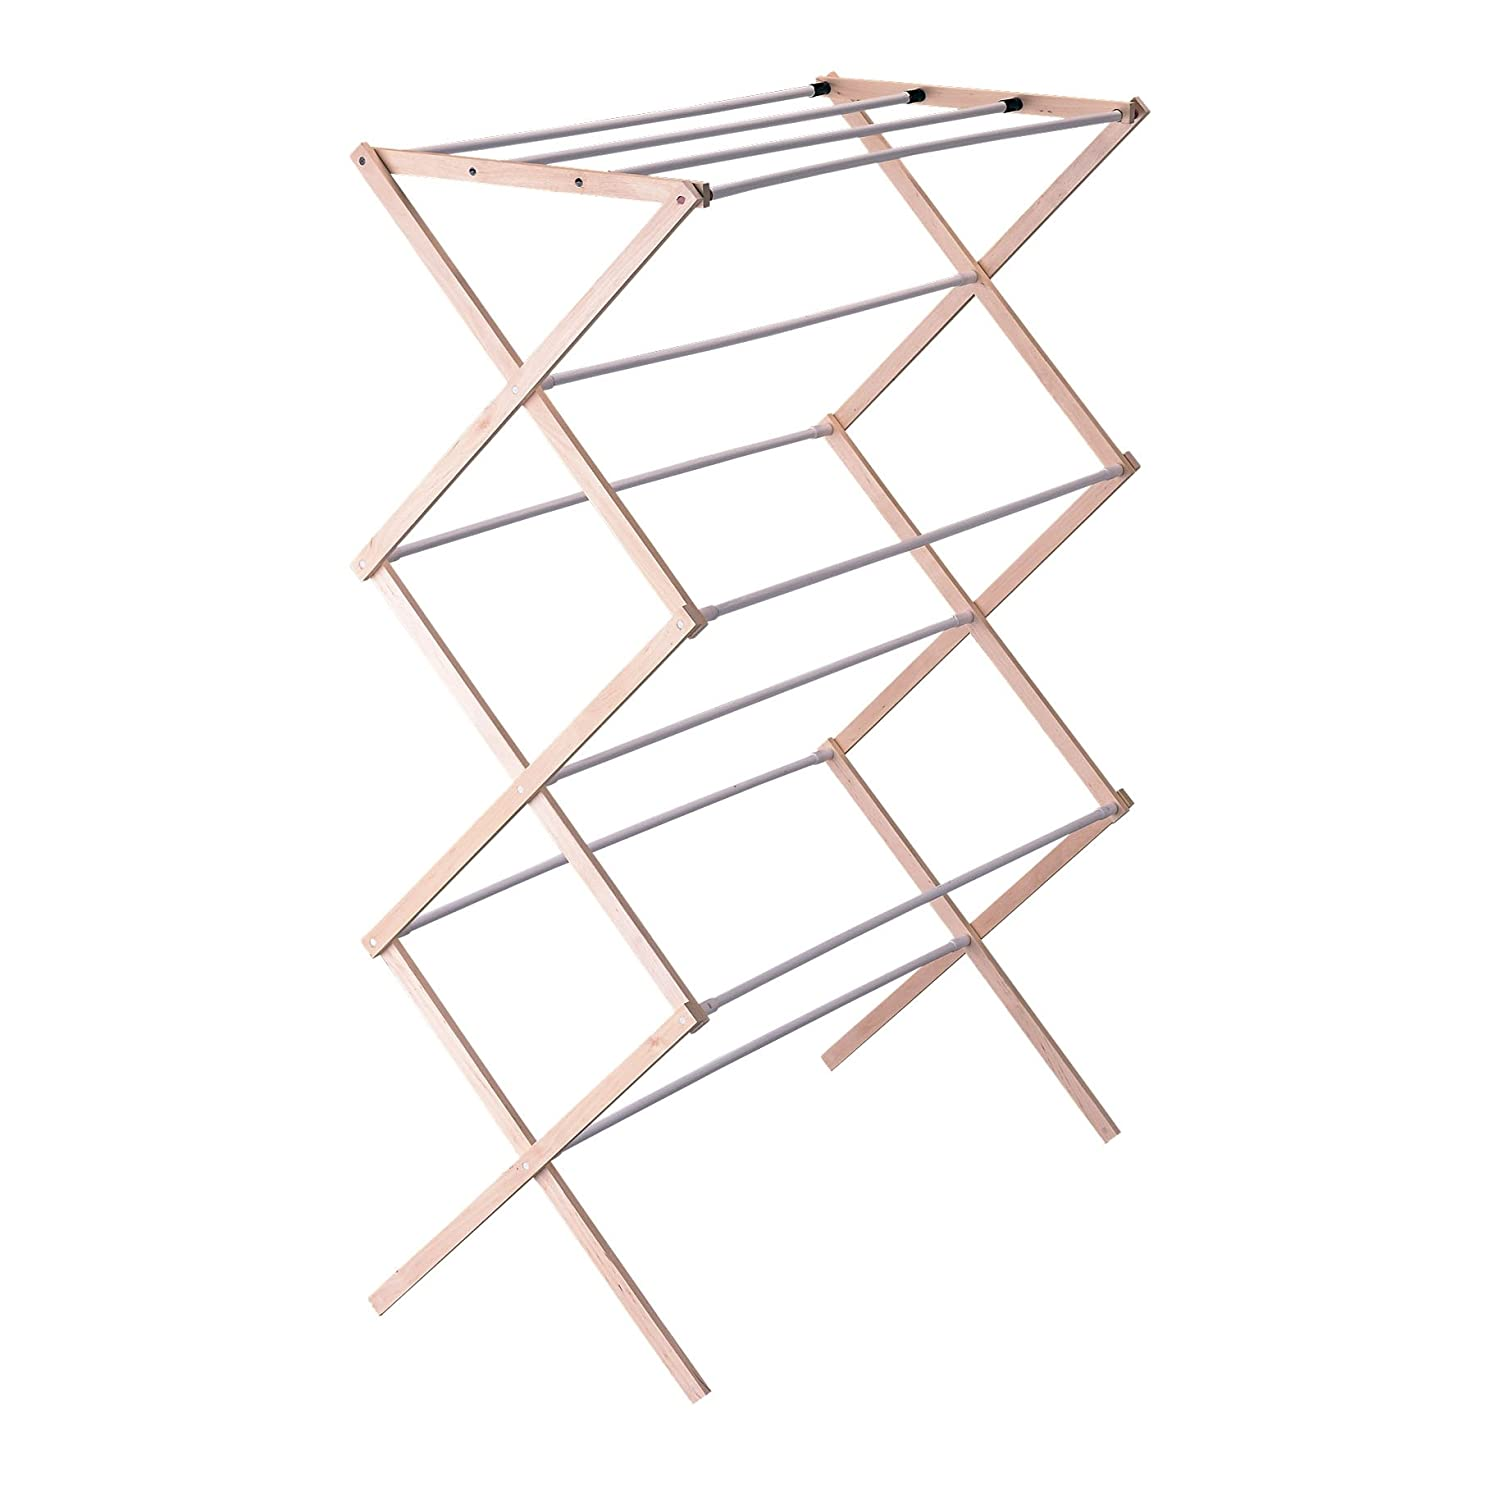 Uncategorized Hanging Clothes Drying Rack amazon com household essentials 5001 collapsible folding wooden clothes drying rack for laundry pre assembled home kitchen